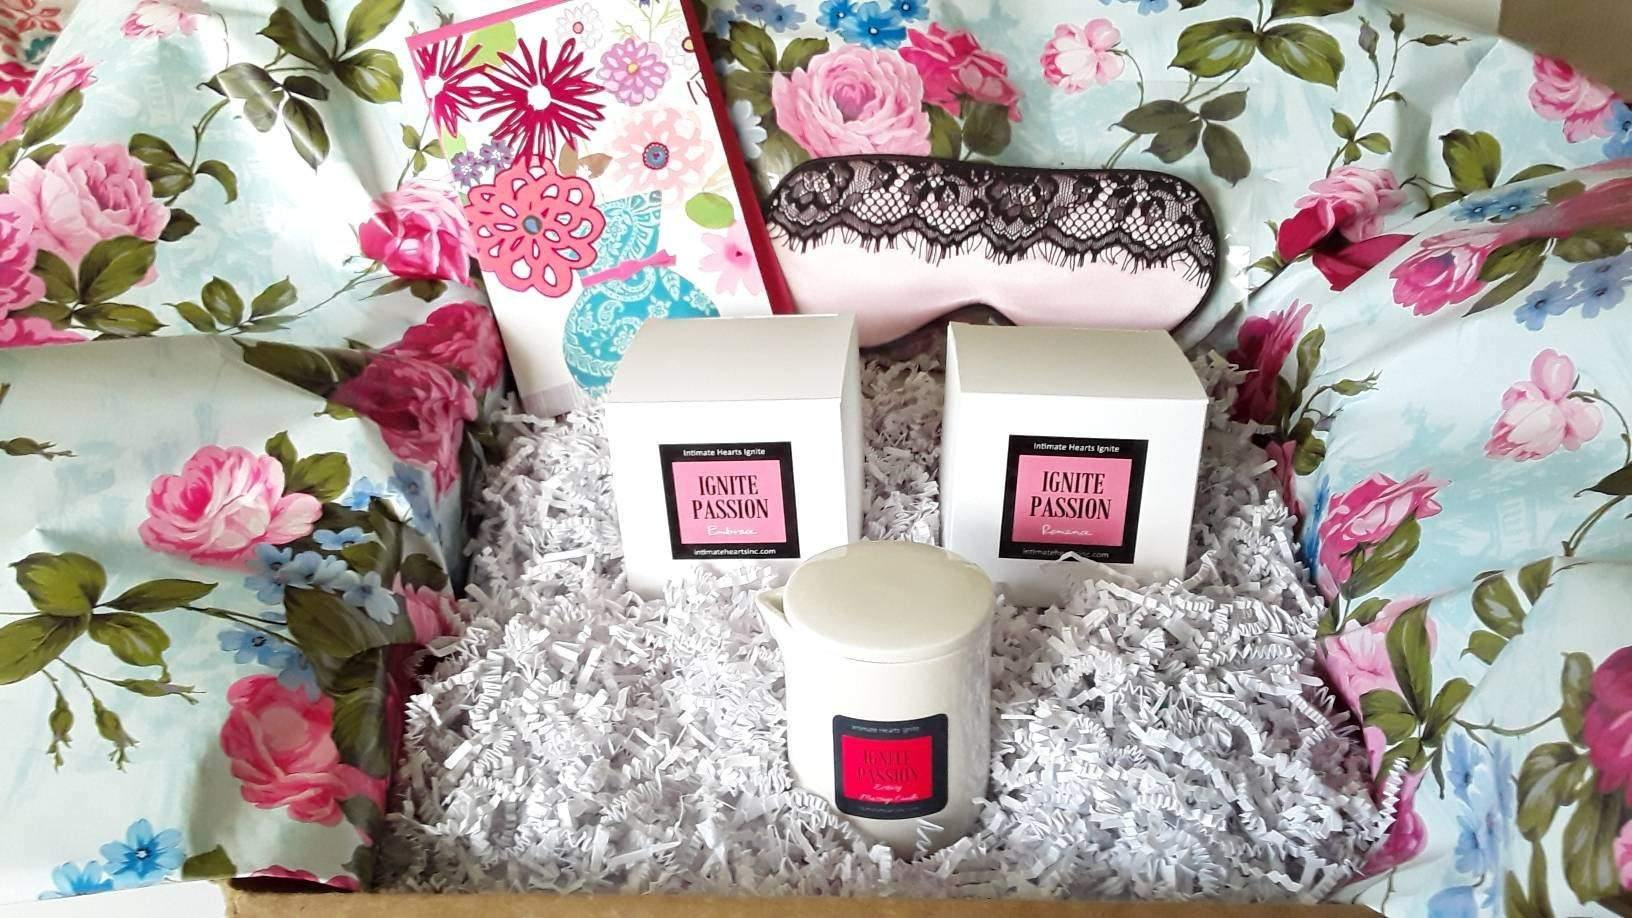 Day at the spa, luxury spa massage candle gift set - Intimate Hearts Ignite Passion